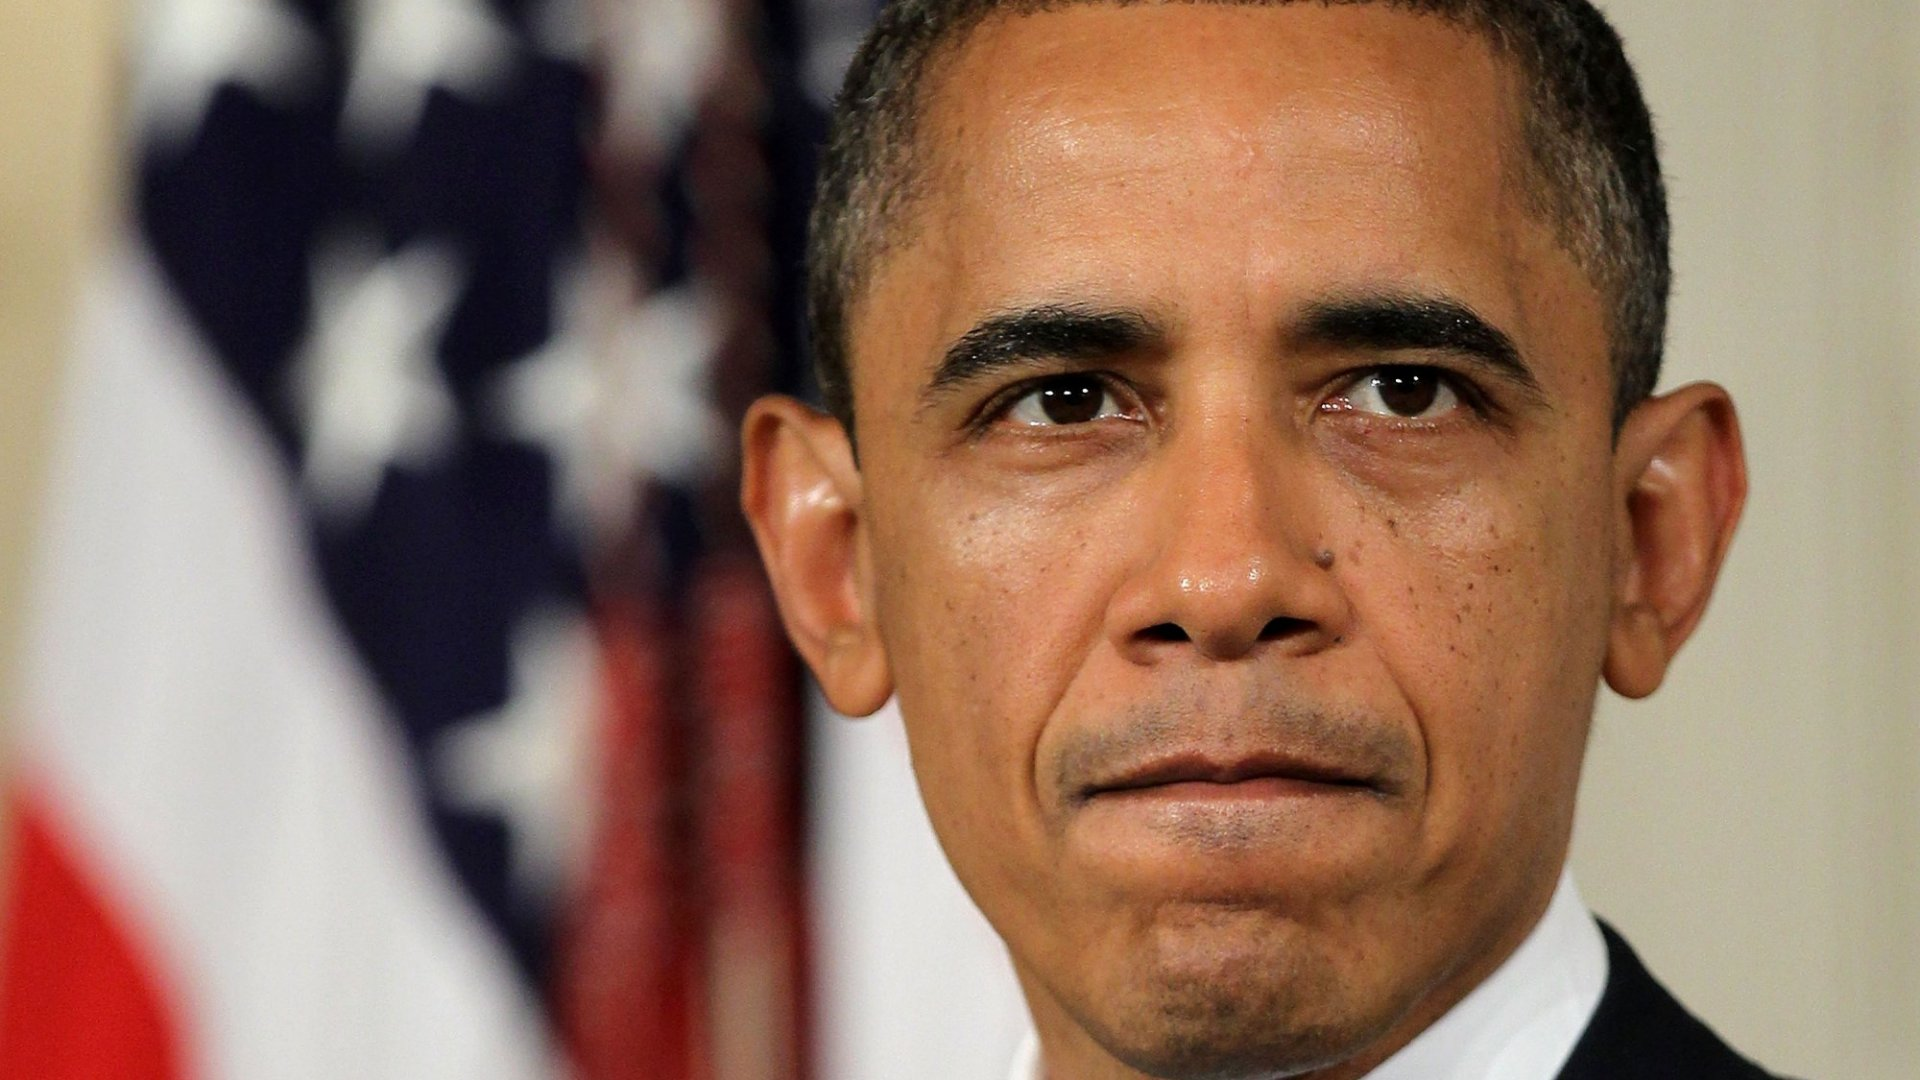 Obama Criticized Staples For Reportedly Trying to Dodge Paying Benefits